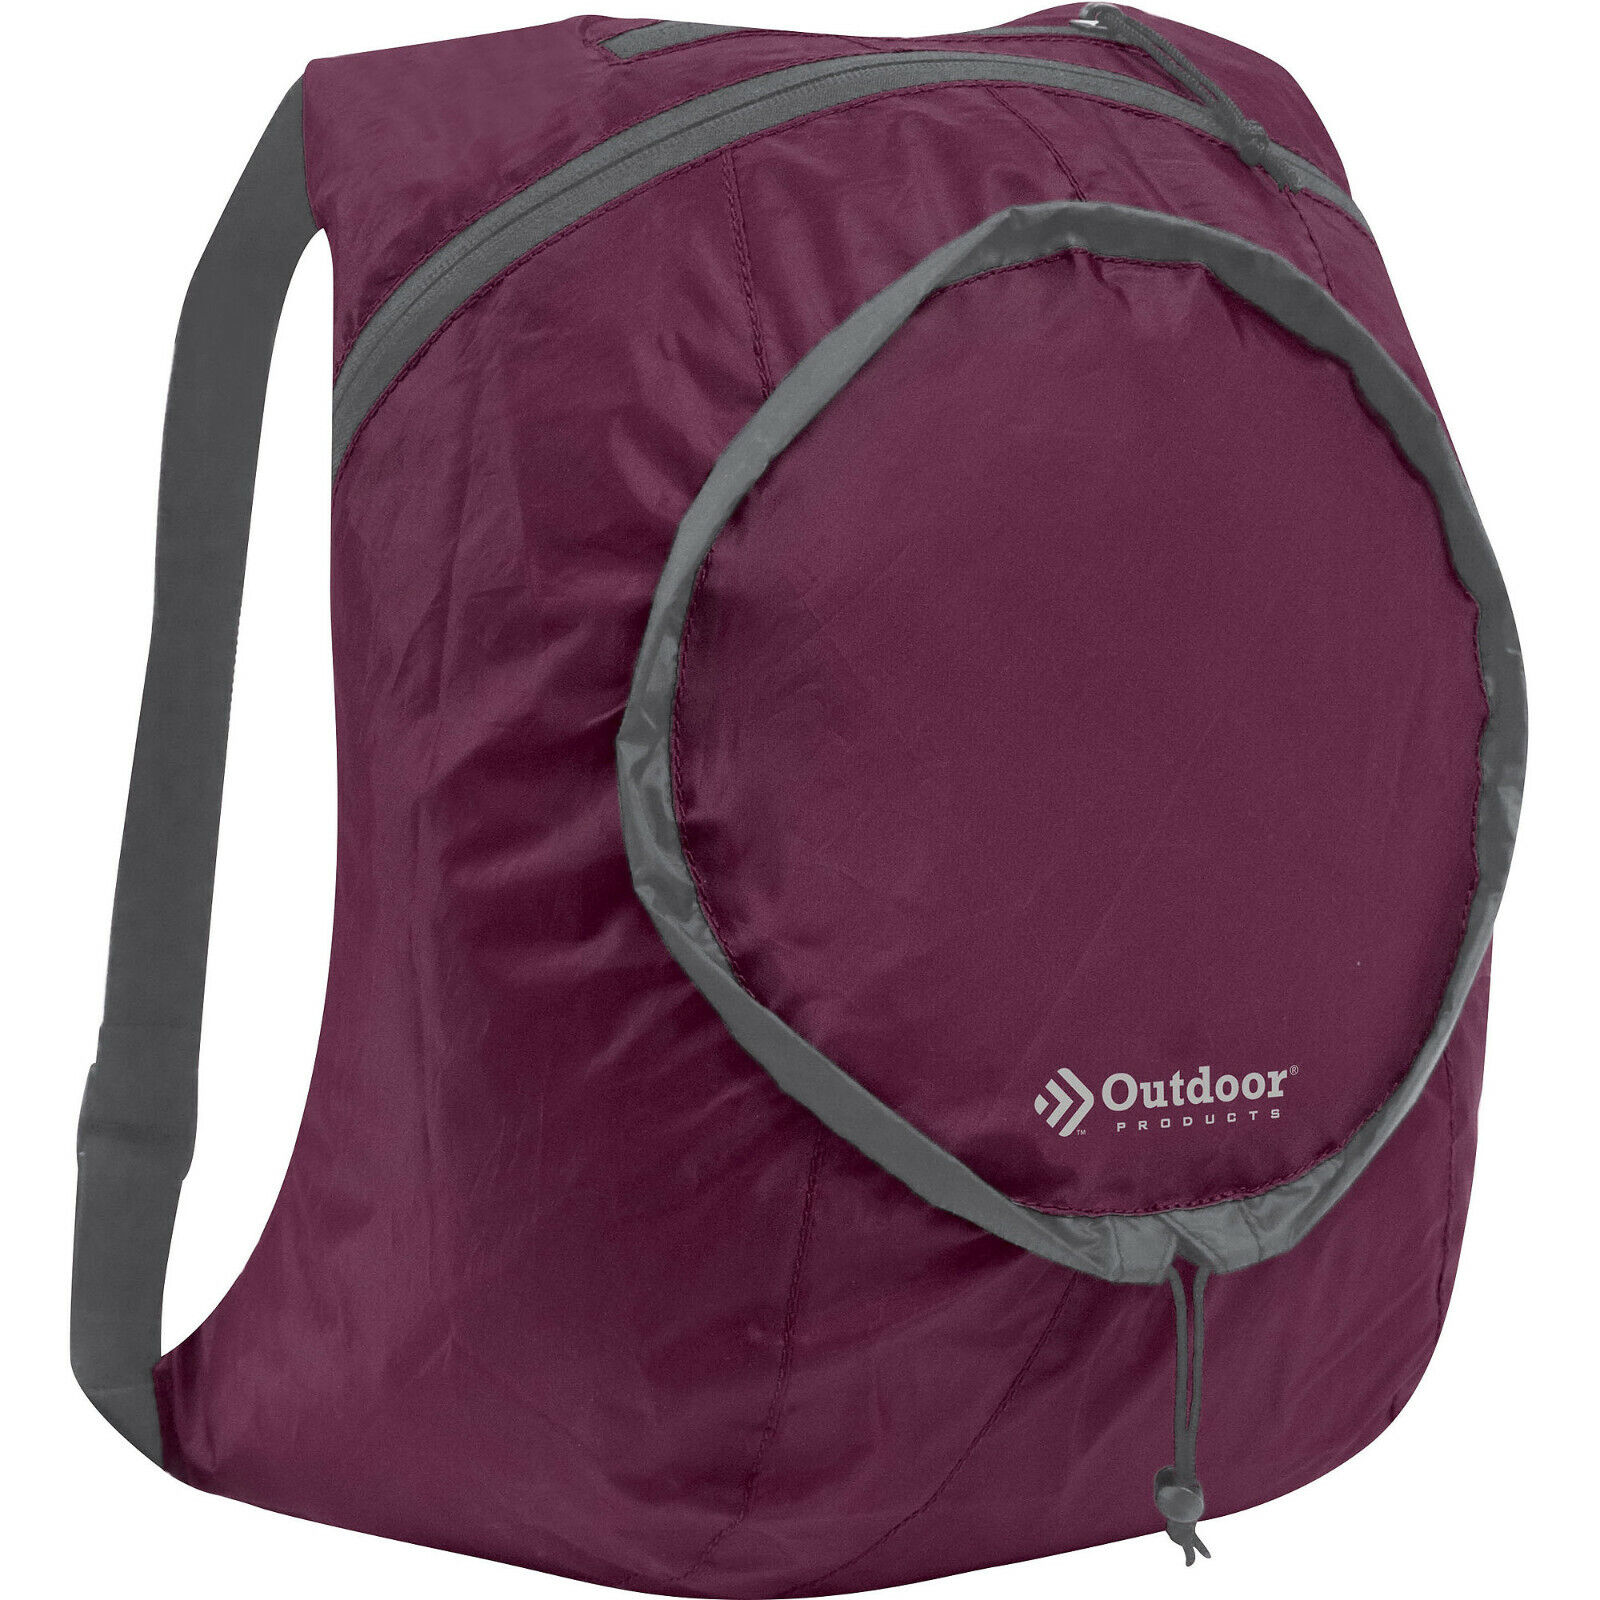 Outdoor Products Packable Day Pack Potent Purple - Outdoor P